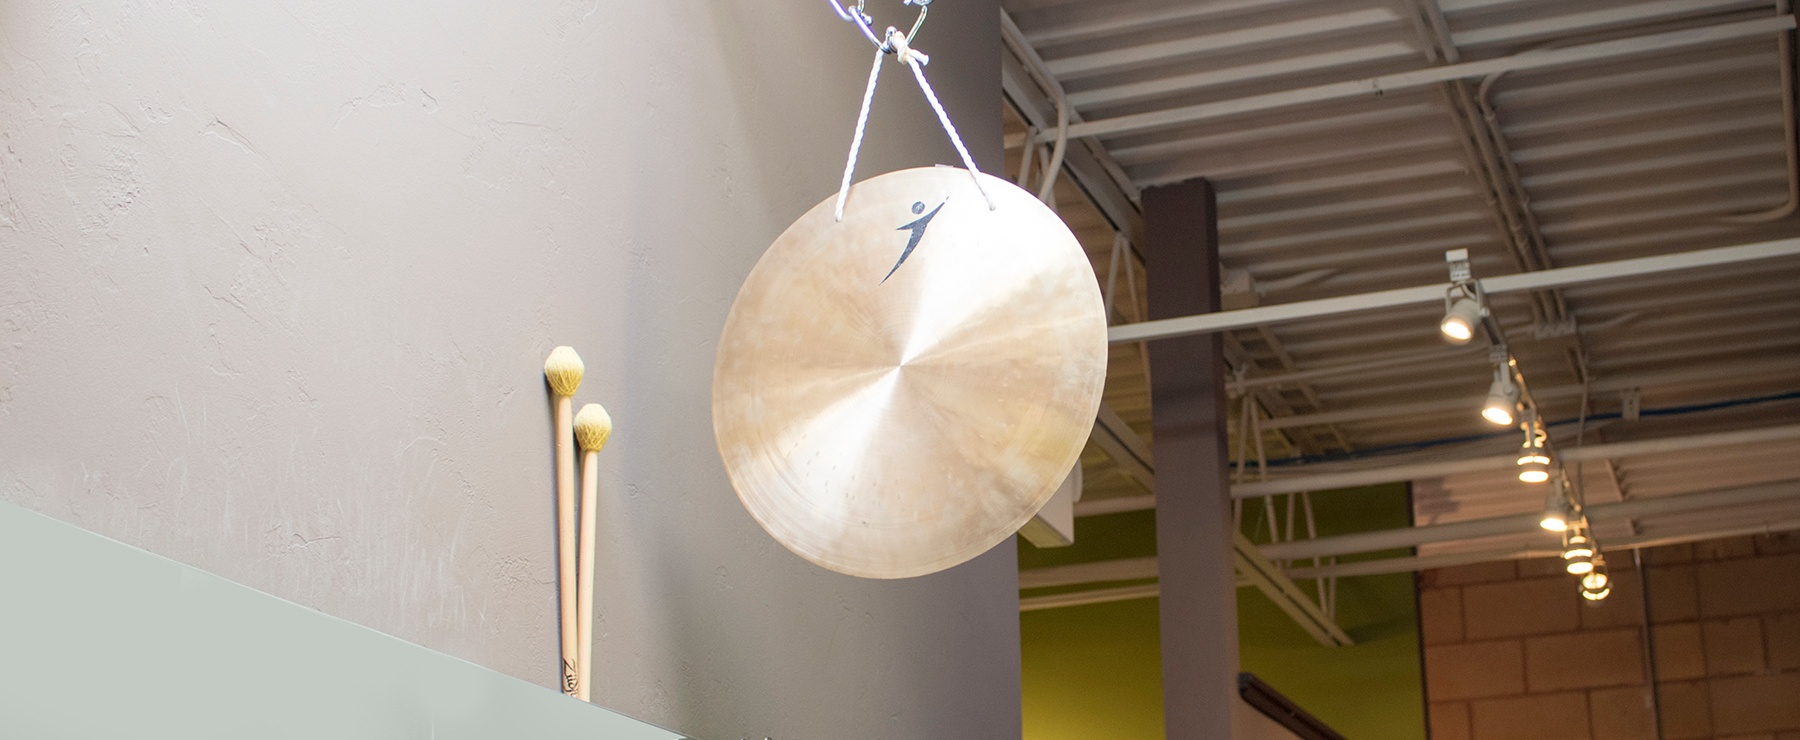 Prophit's gong is used to celebrate our culture and marketing wins